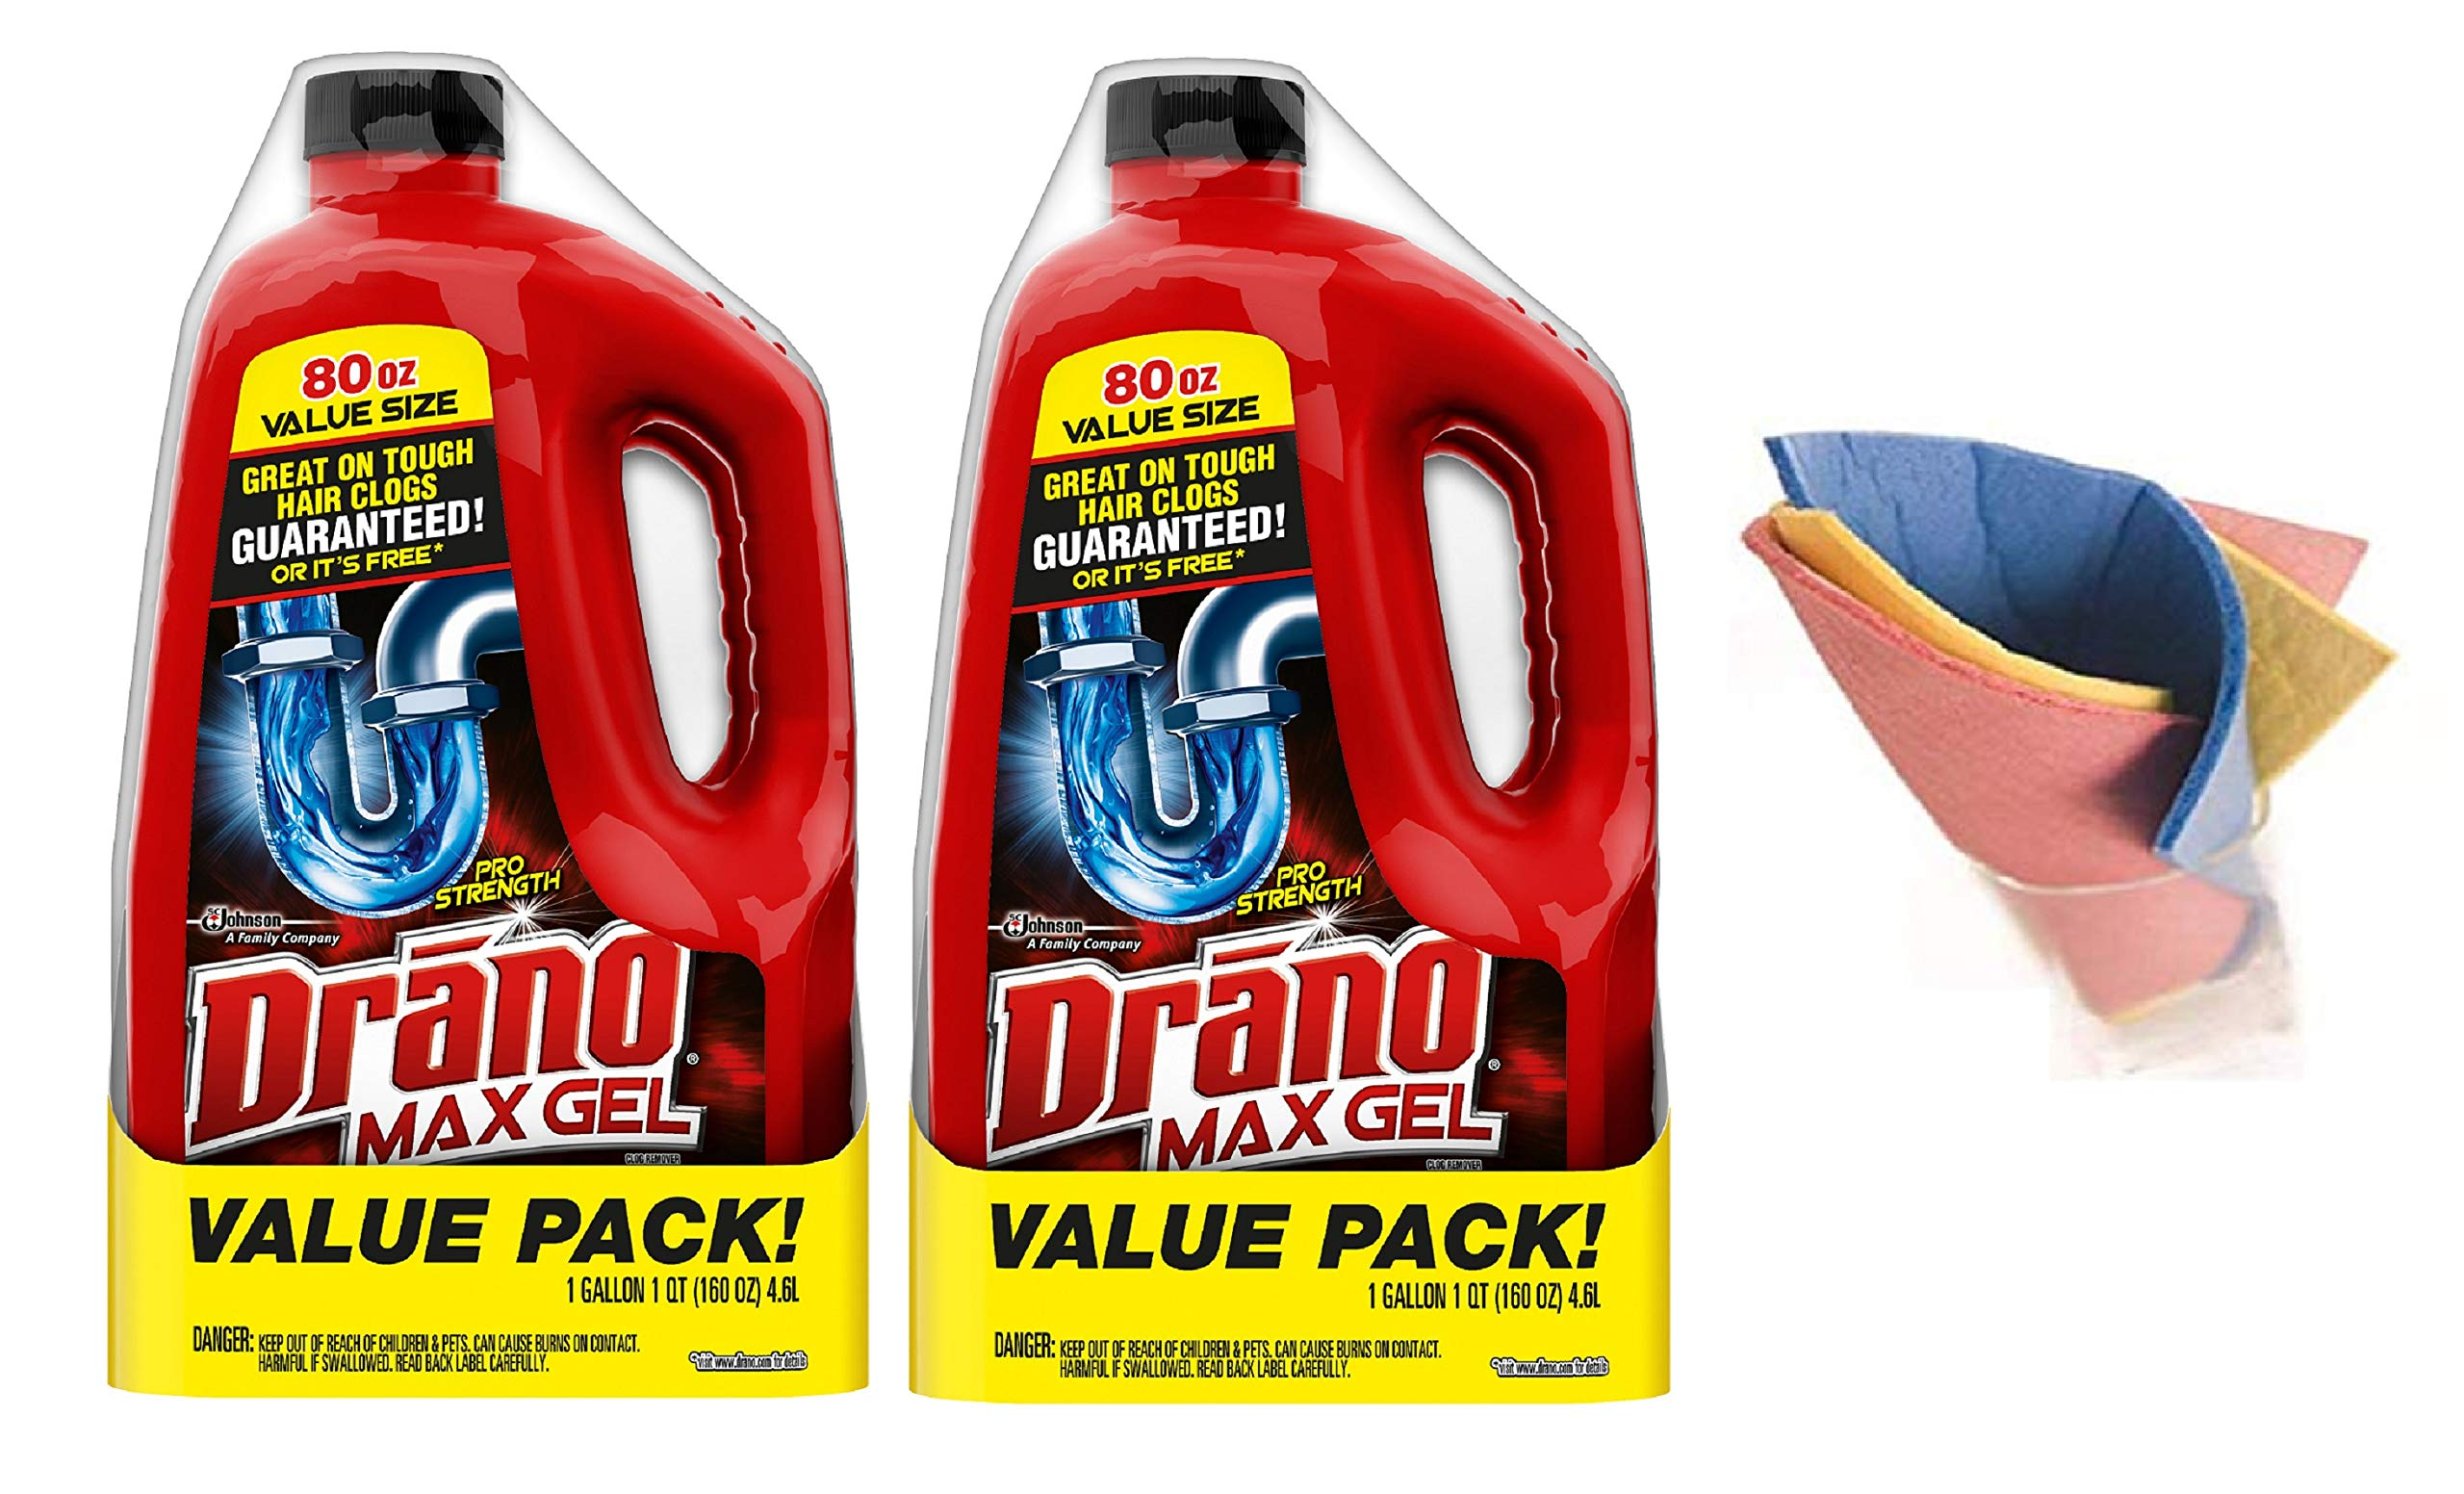 Drano Value Pack 80 fl oz Max Gel Clog Remover (Pack of 2) Made in USA + FREEBIES